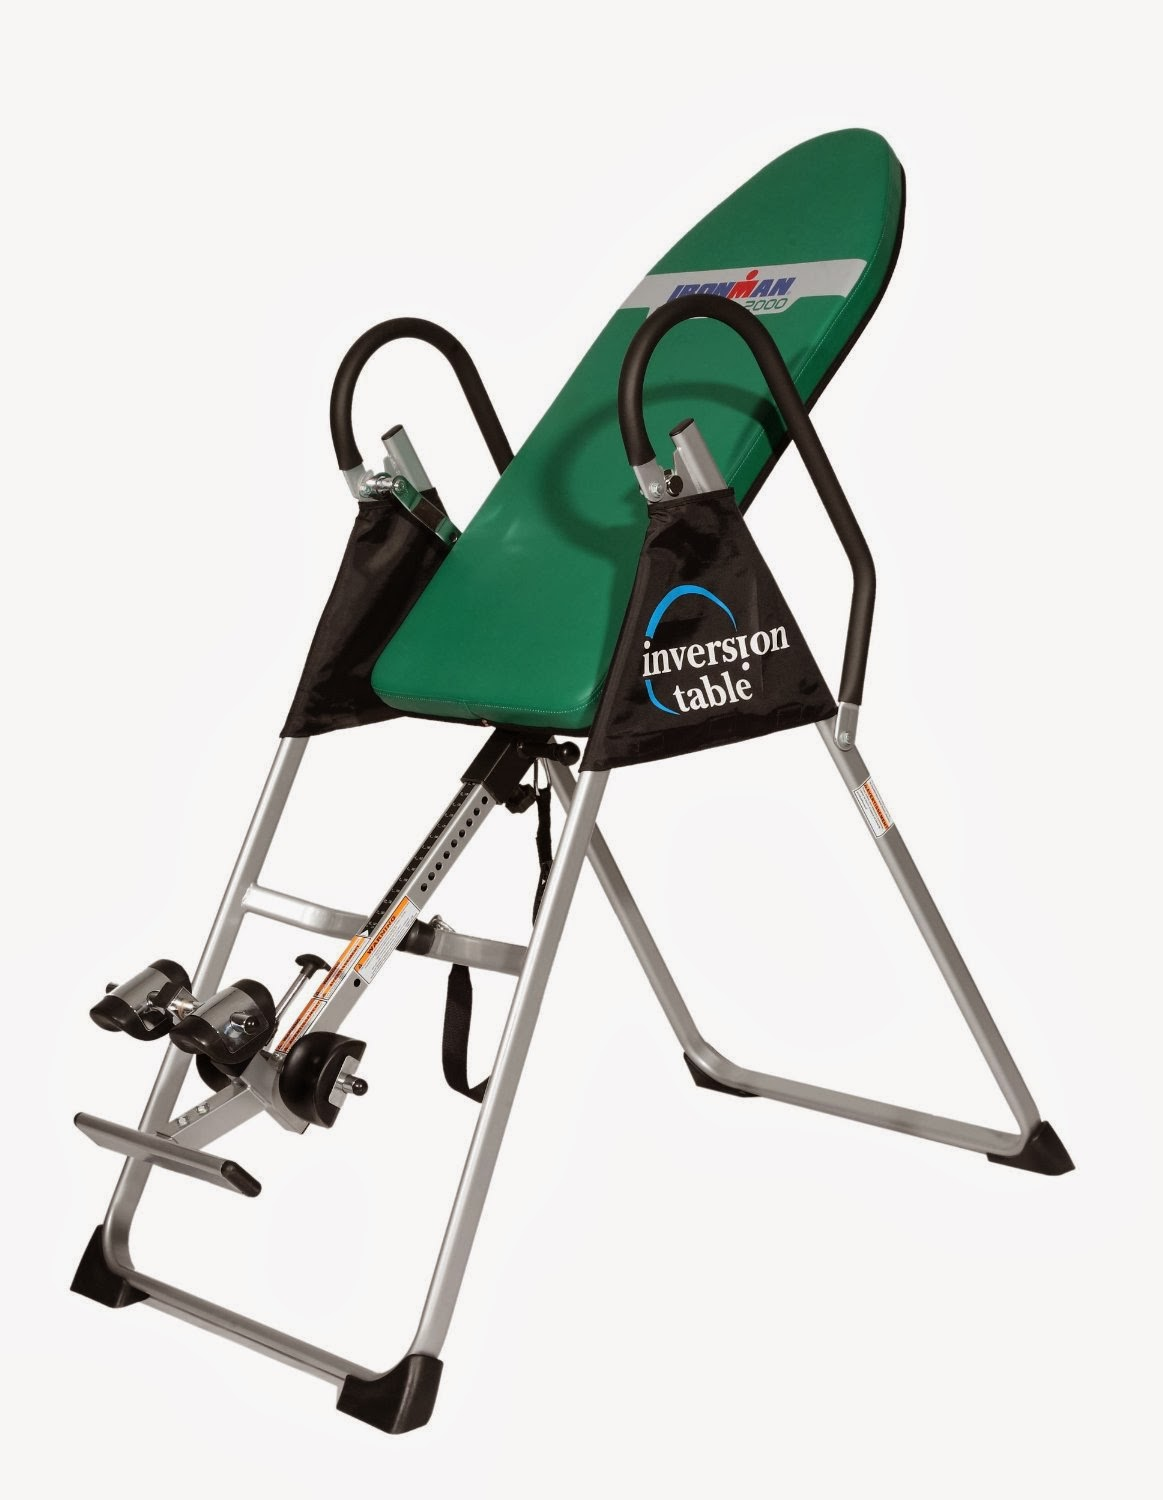 Ironman Gravity 2000 Inversion Table versus Gravity 4000.  Helps with back pain relief.